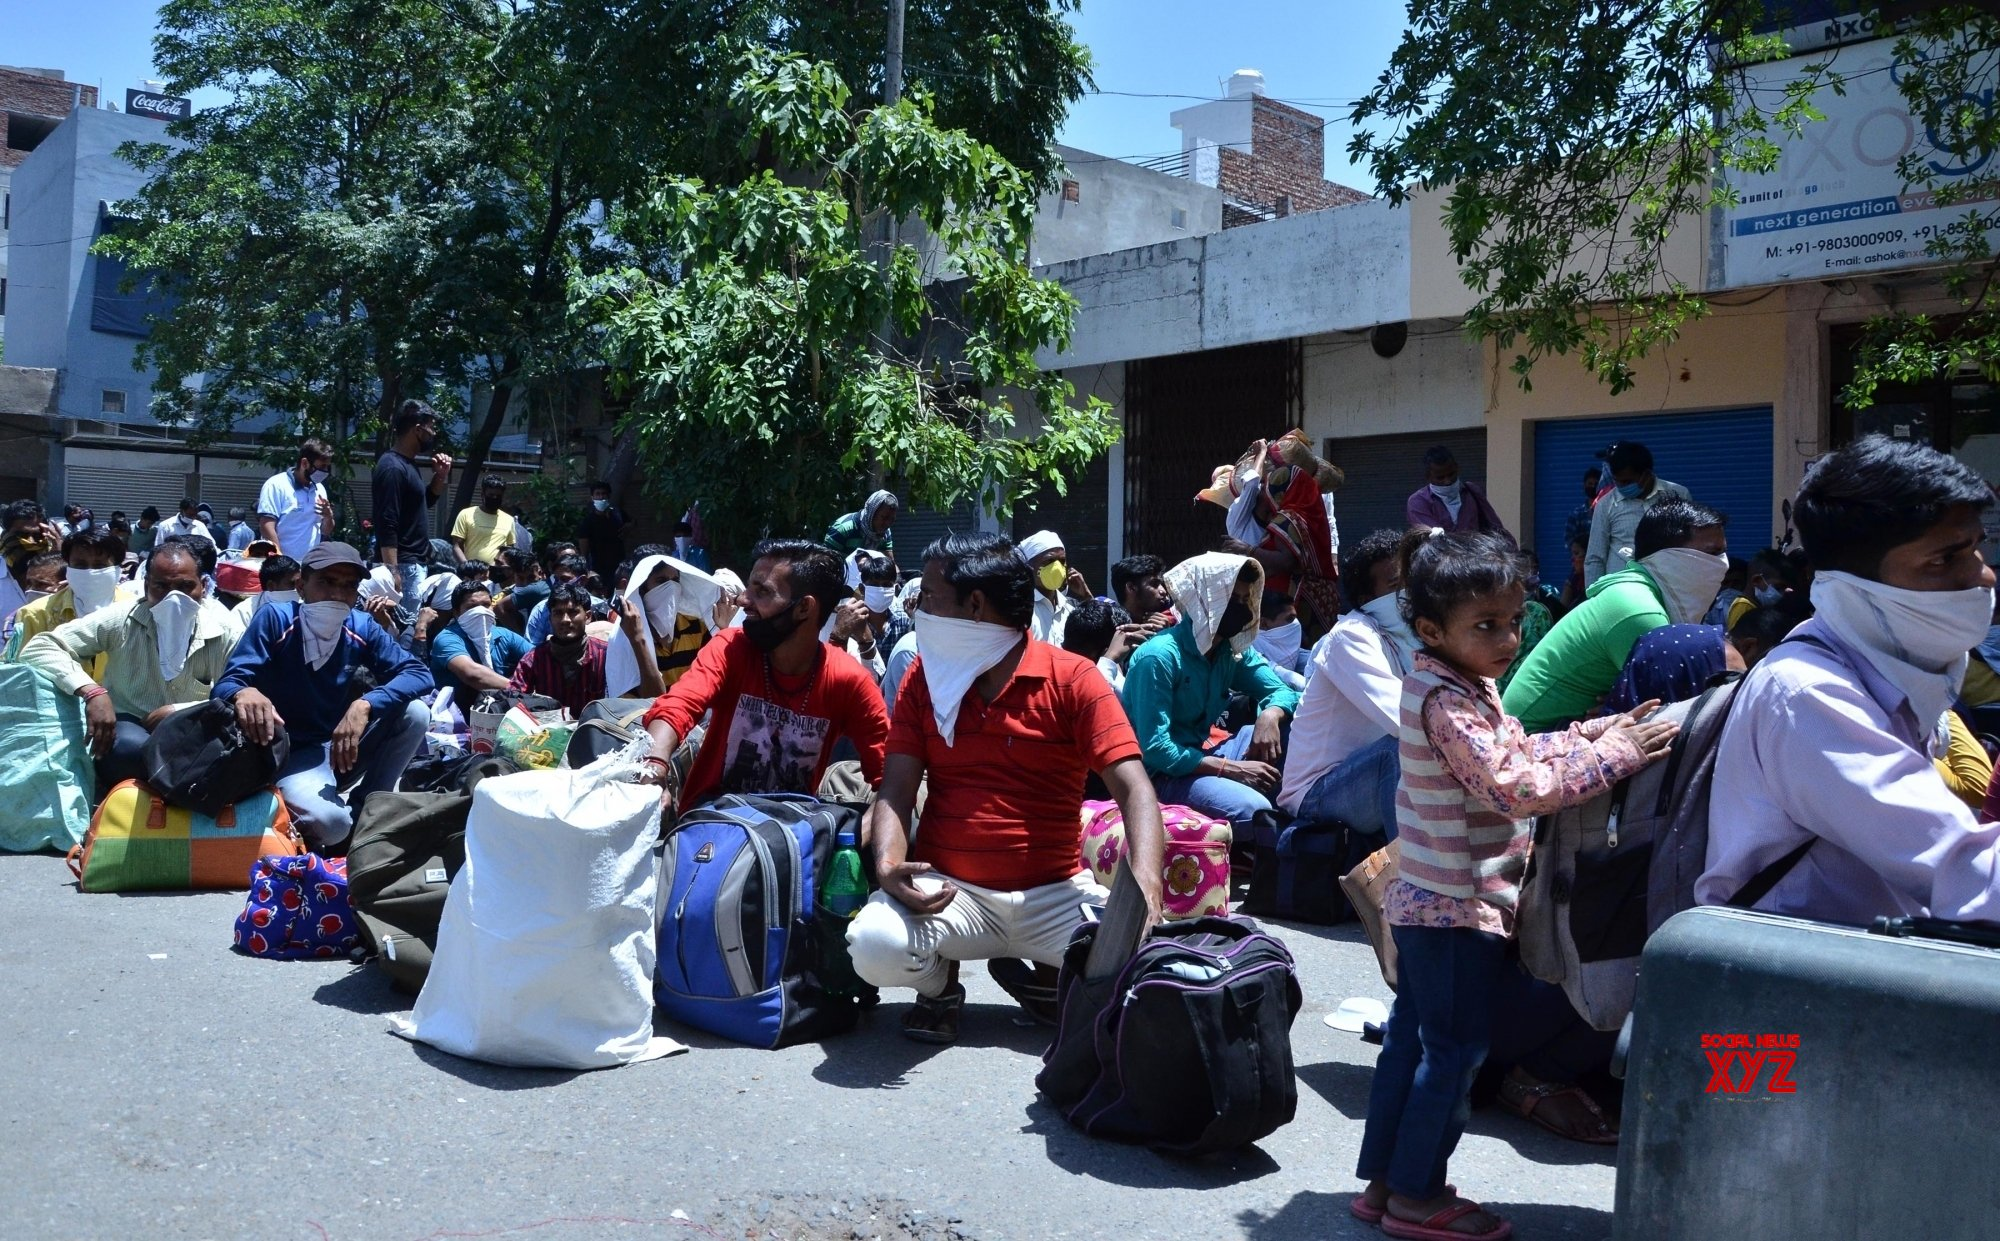 Amritsar: UP migrant workers return home during lockdown - 4 #Gallery